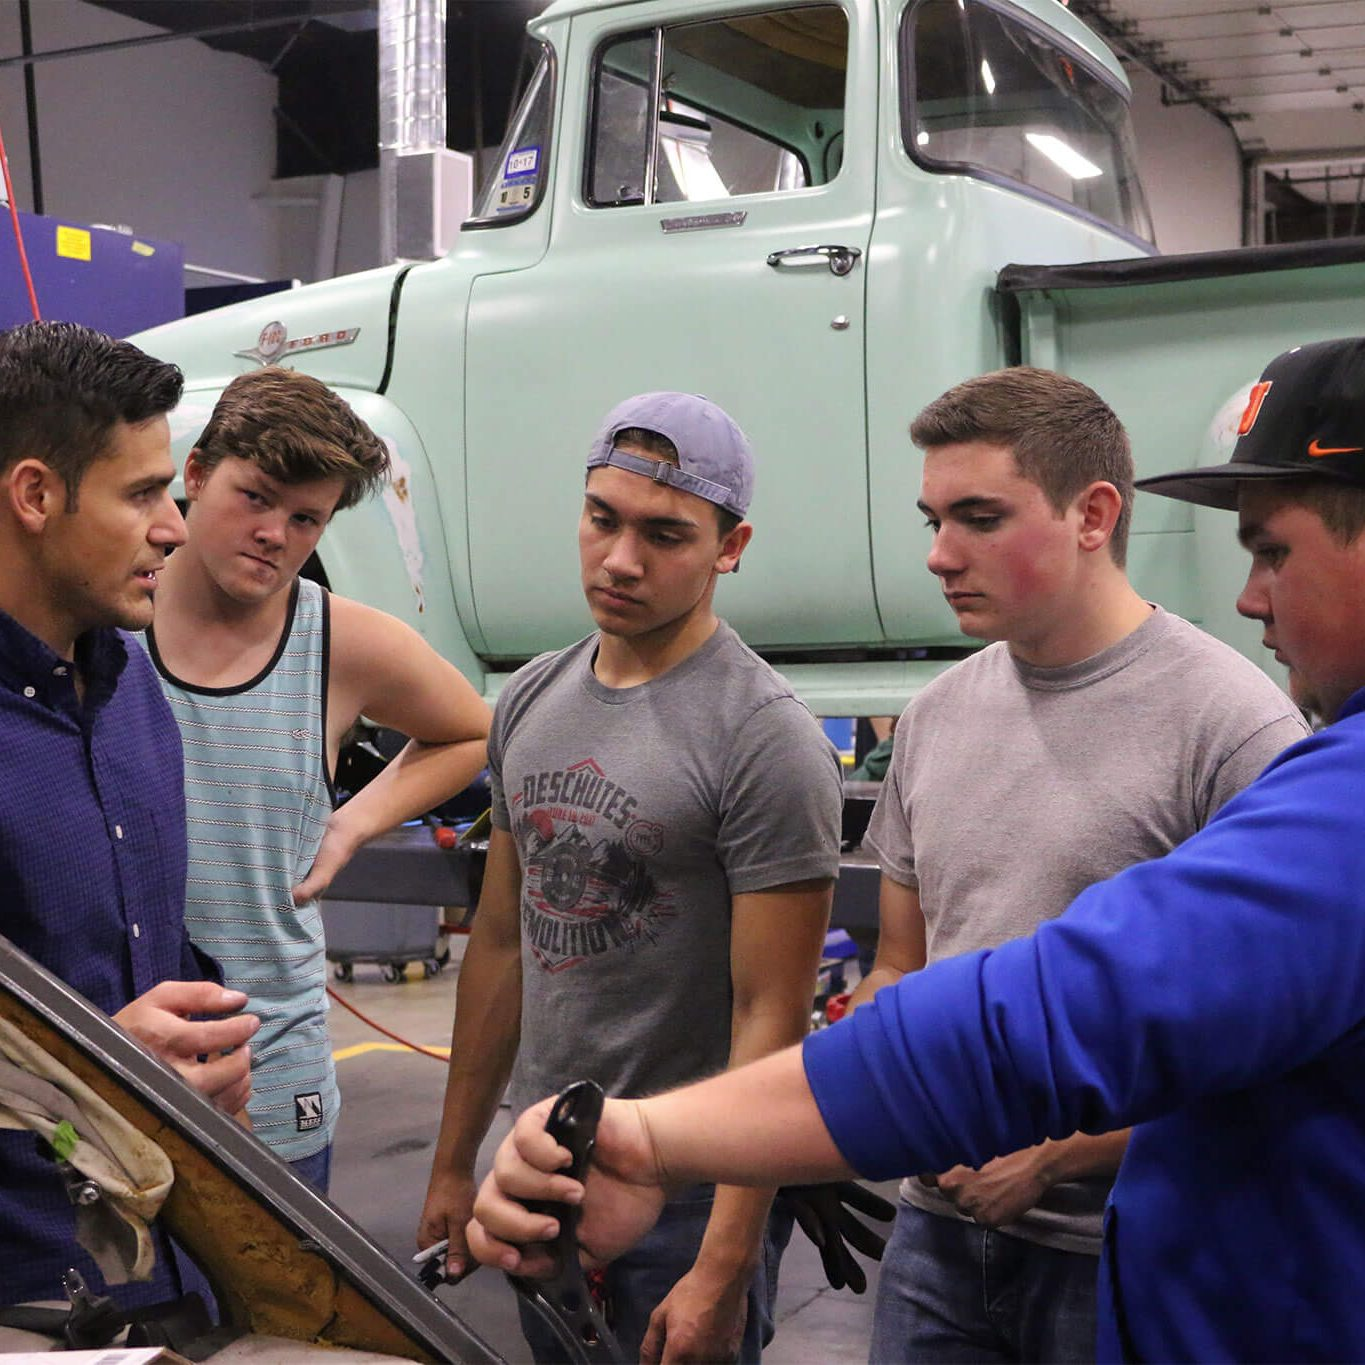 Auto Body Repair and Painting. CTEC Career Technical Education Center through Salem-Keizer Public Schools prepares students for high-skill, high-wage, and high-demand careers, while developing the professional skills, technical knowledge, academic foundation and real-world experience to assure their success upon graduation.